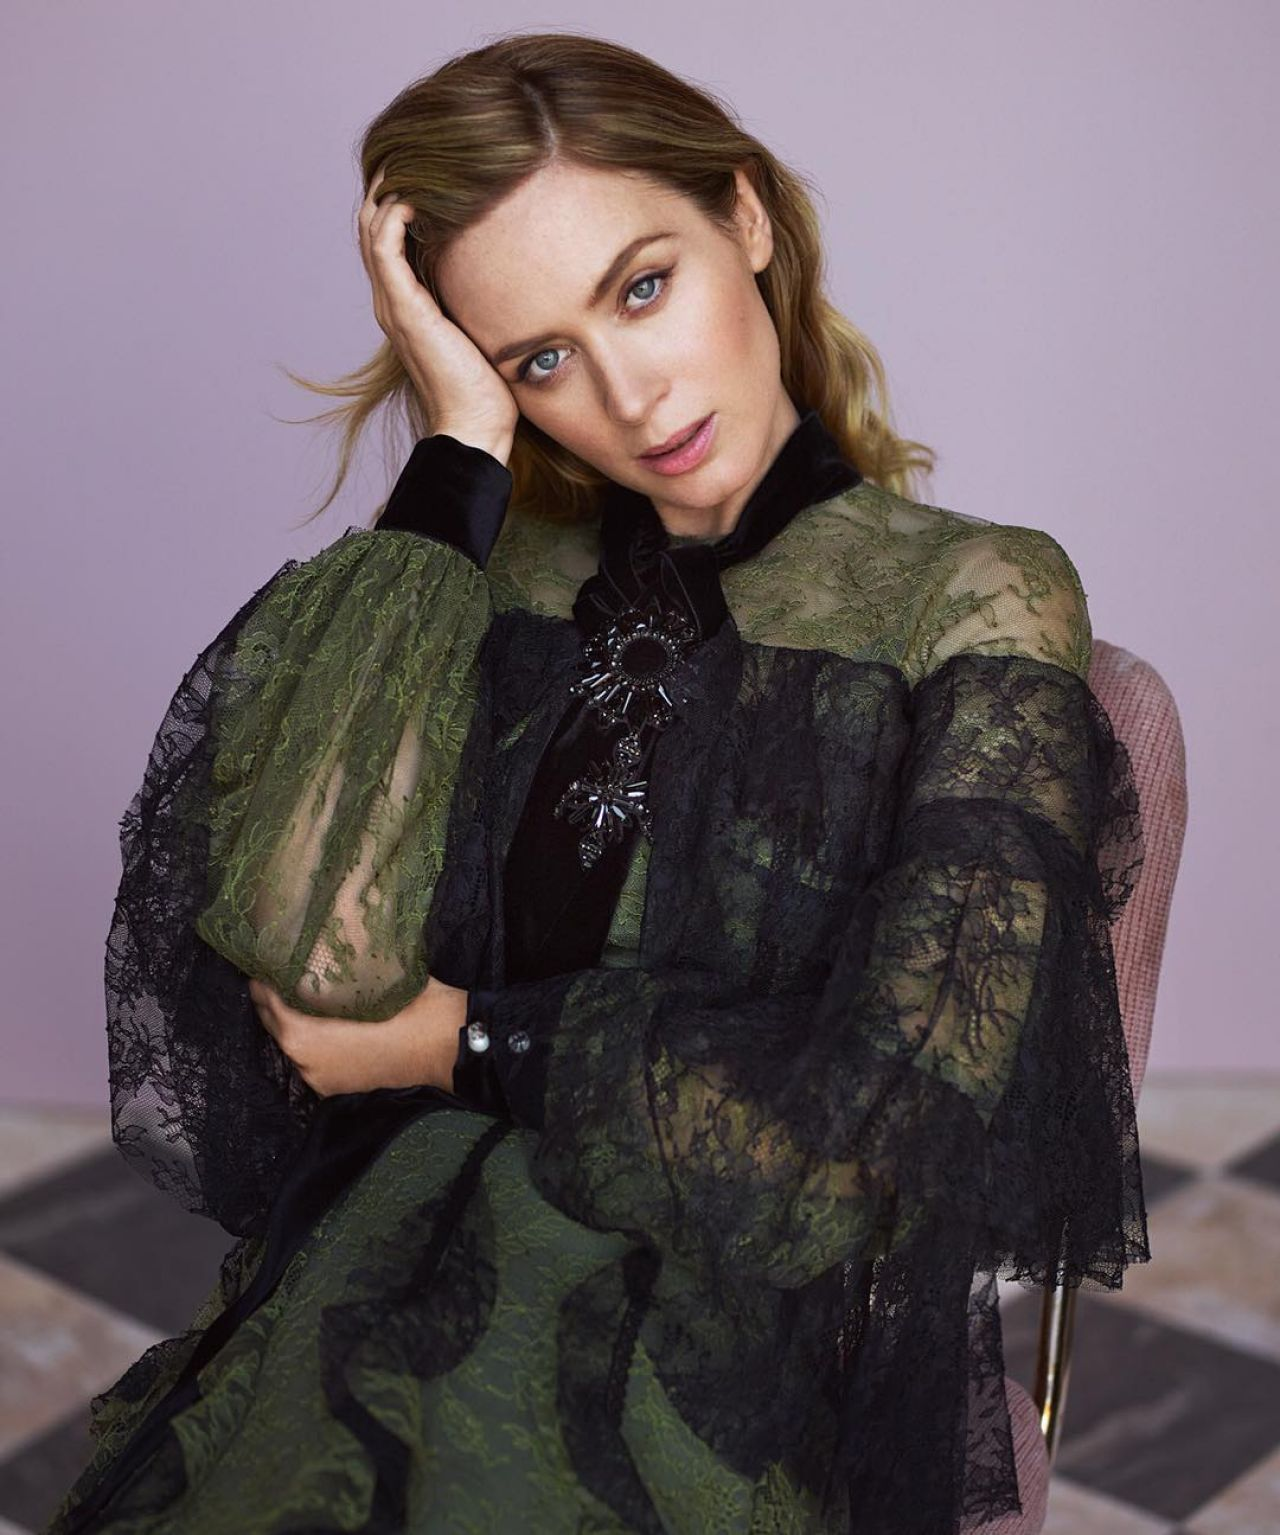 Emily Blunt - Photoshoot for InStyle November 2016 Emily Blunt